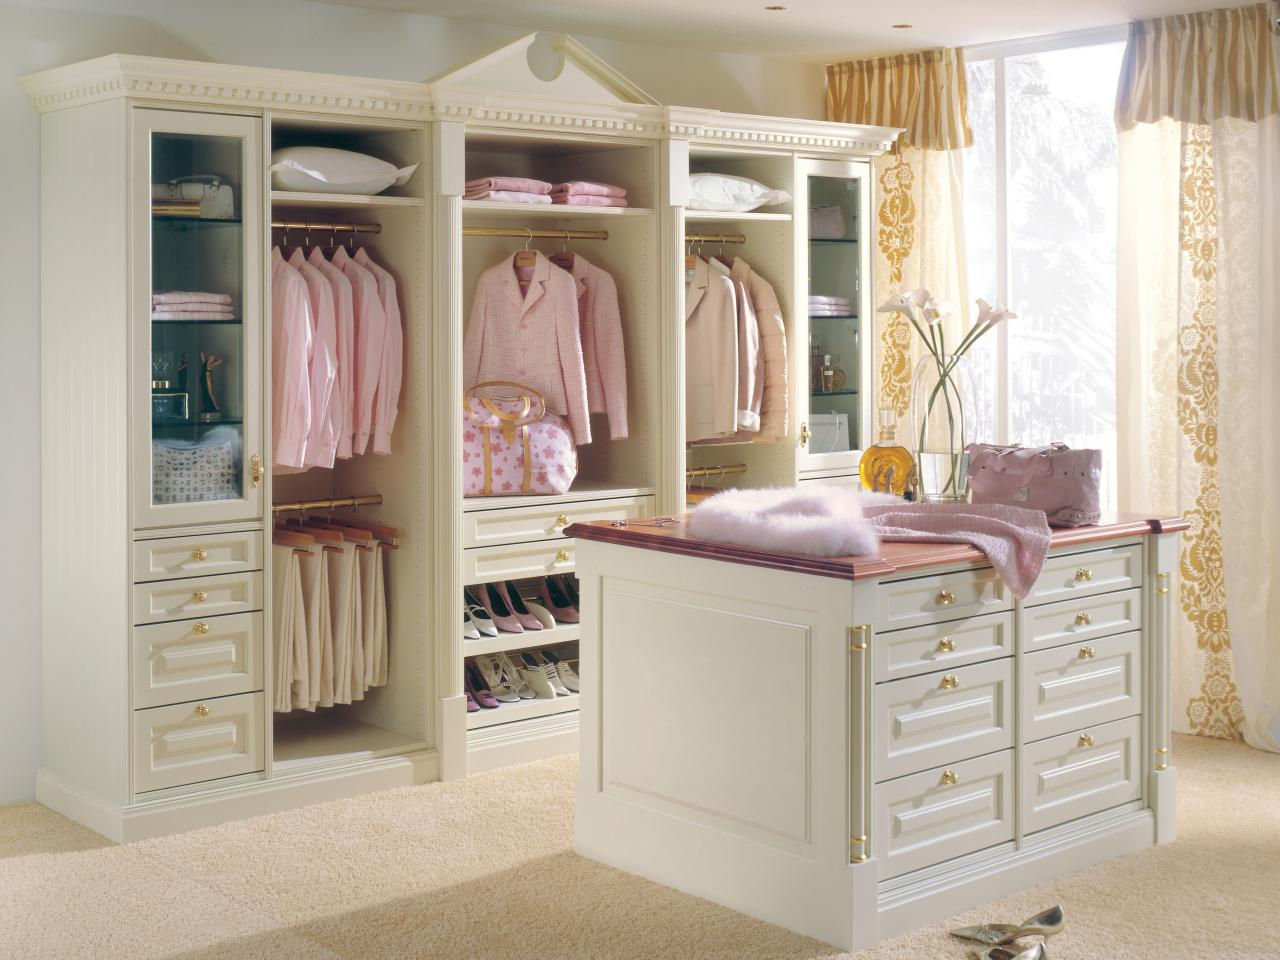 Walk In Closet Design Ideas Part - 21: Comfortable And Personal